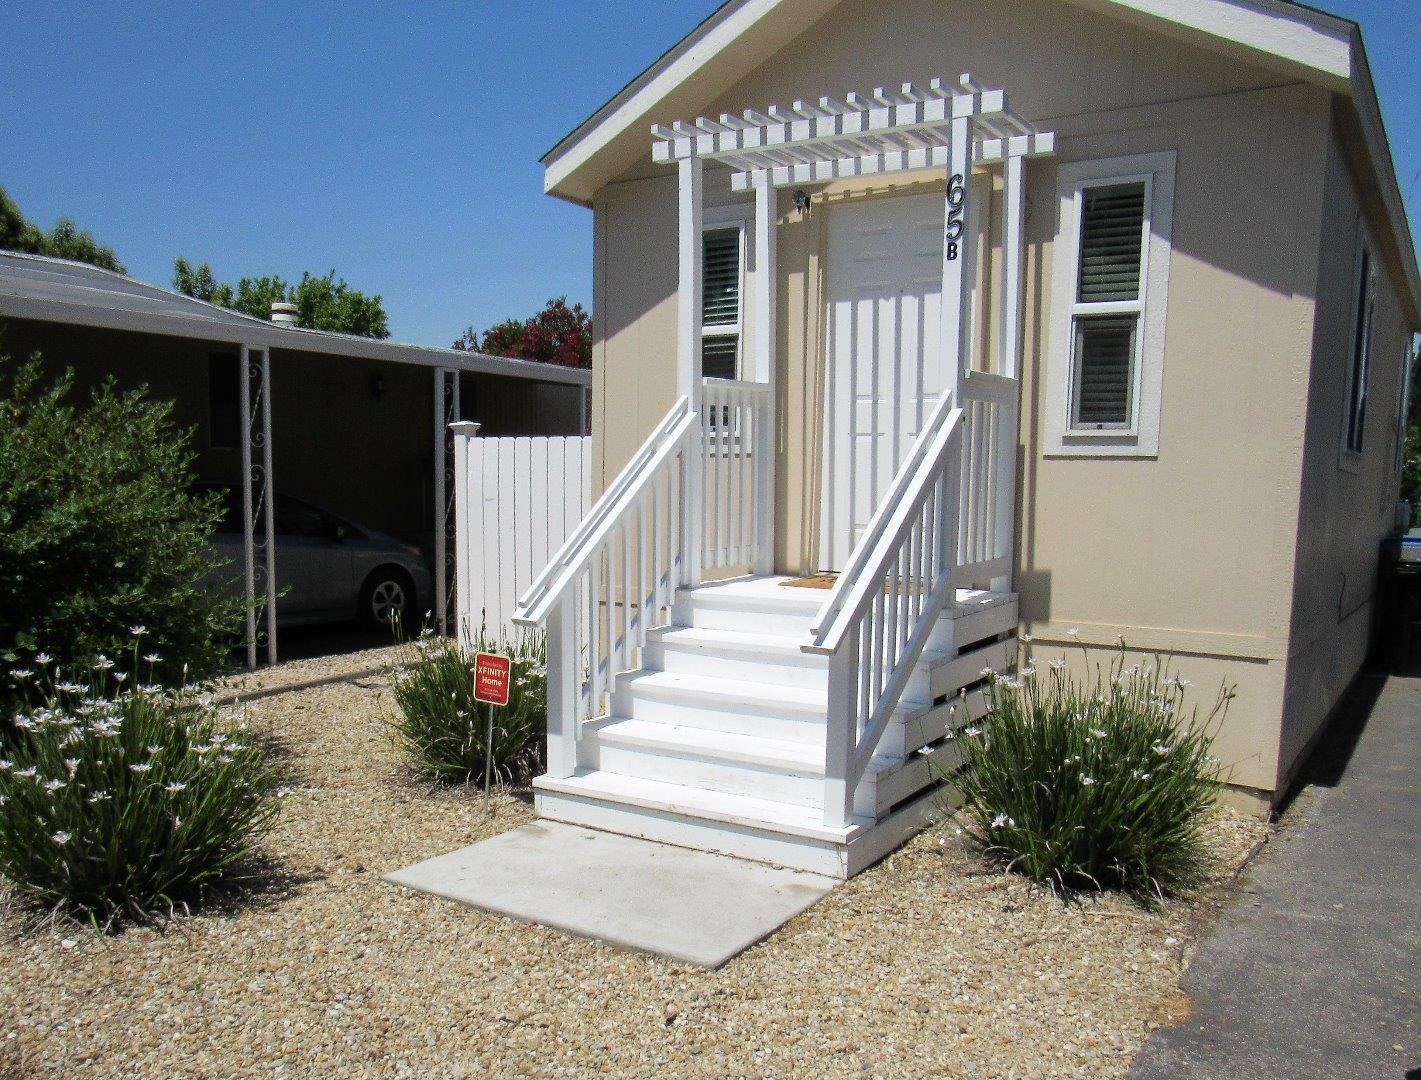 Additional photo for property listing at 200 Ford Road 200 Ford Road San Jose, California 95138 United States